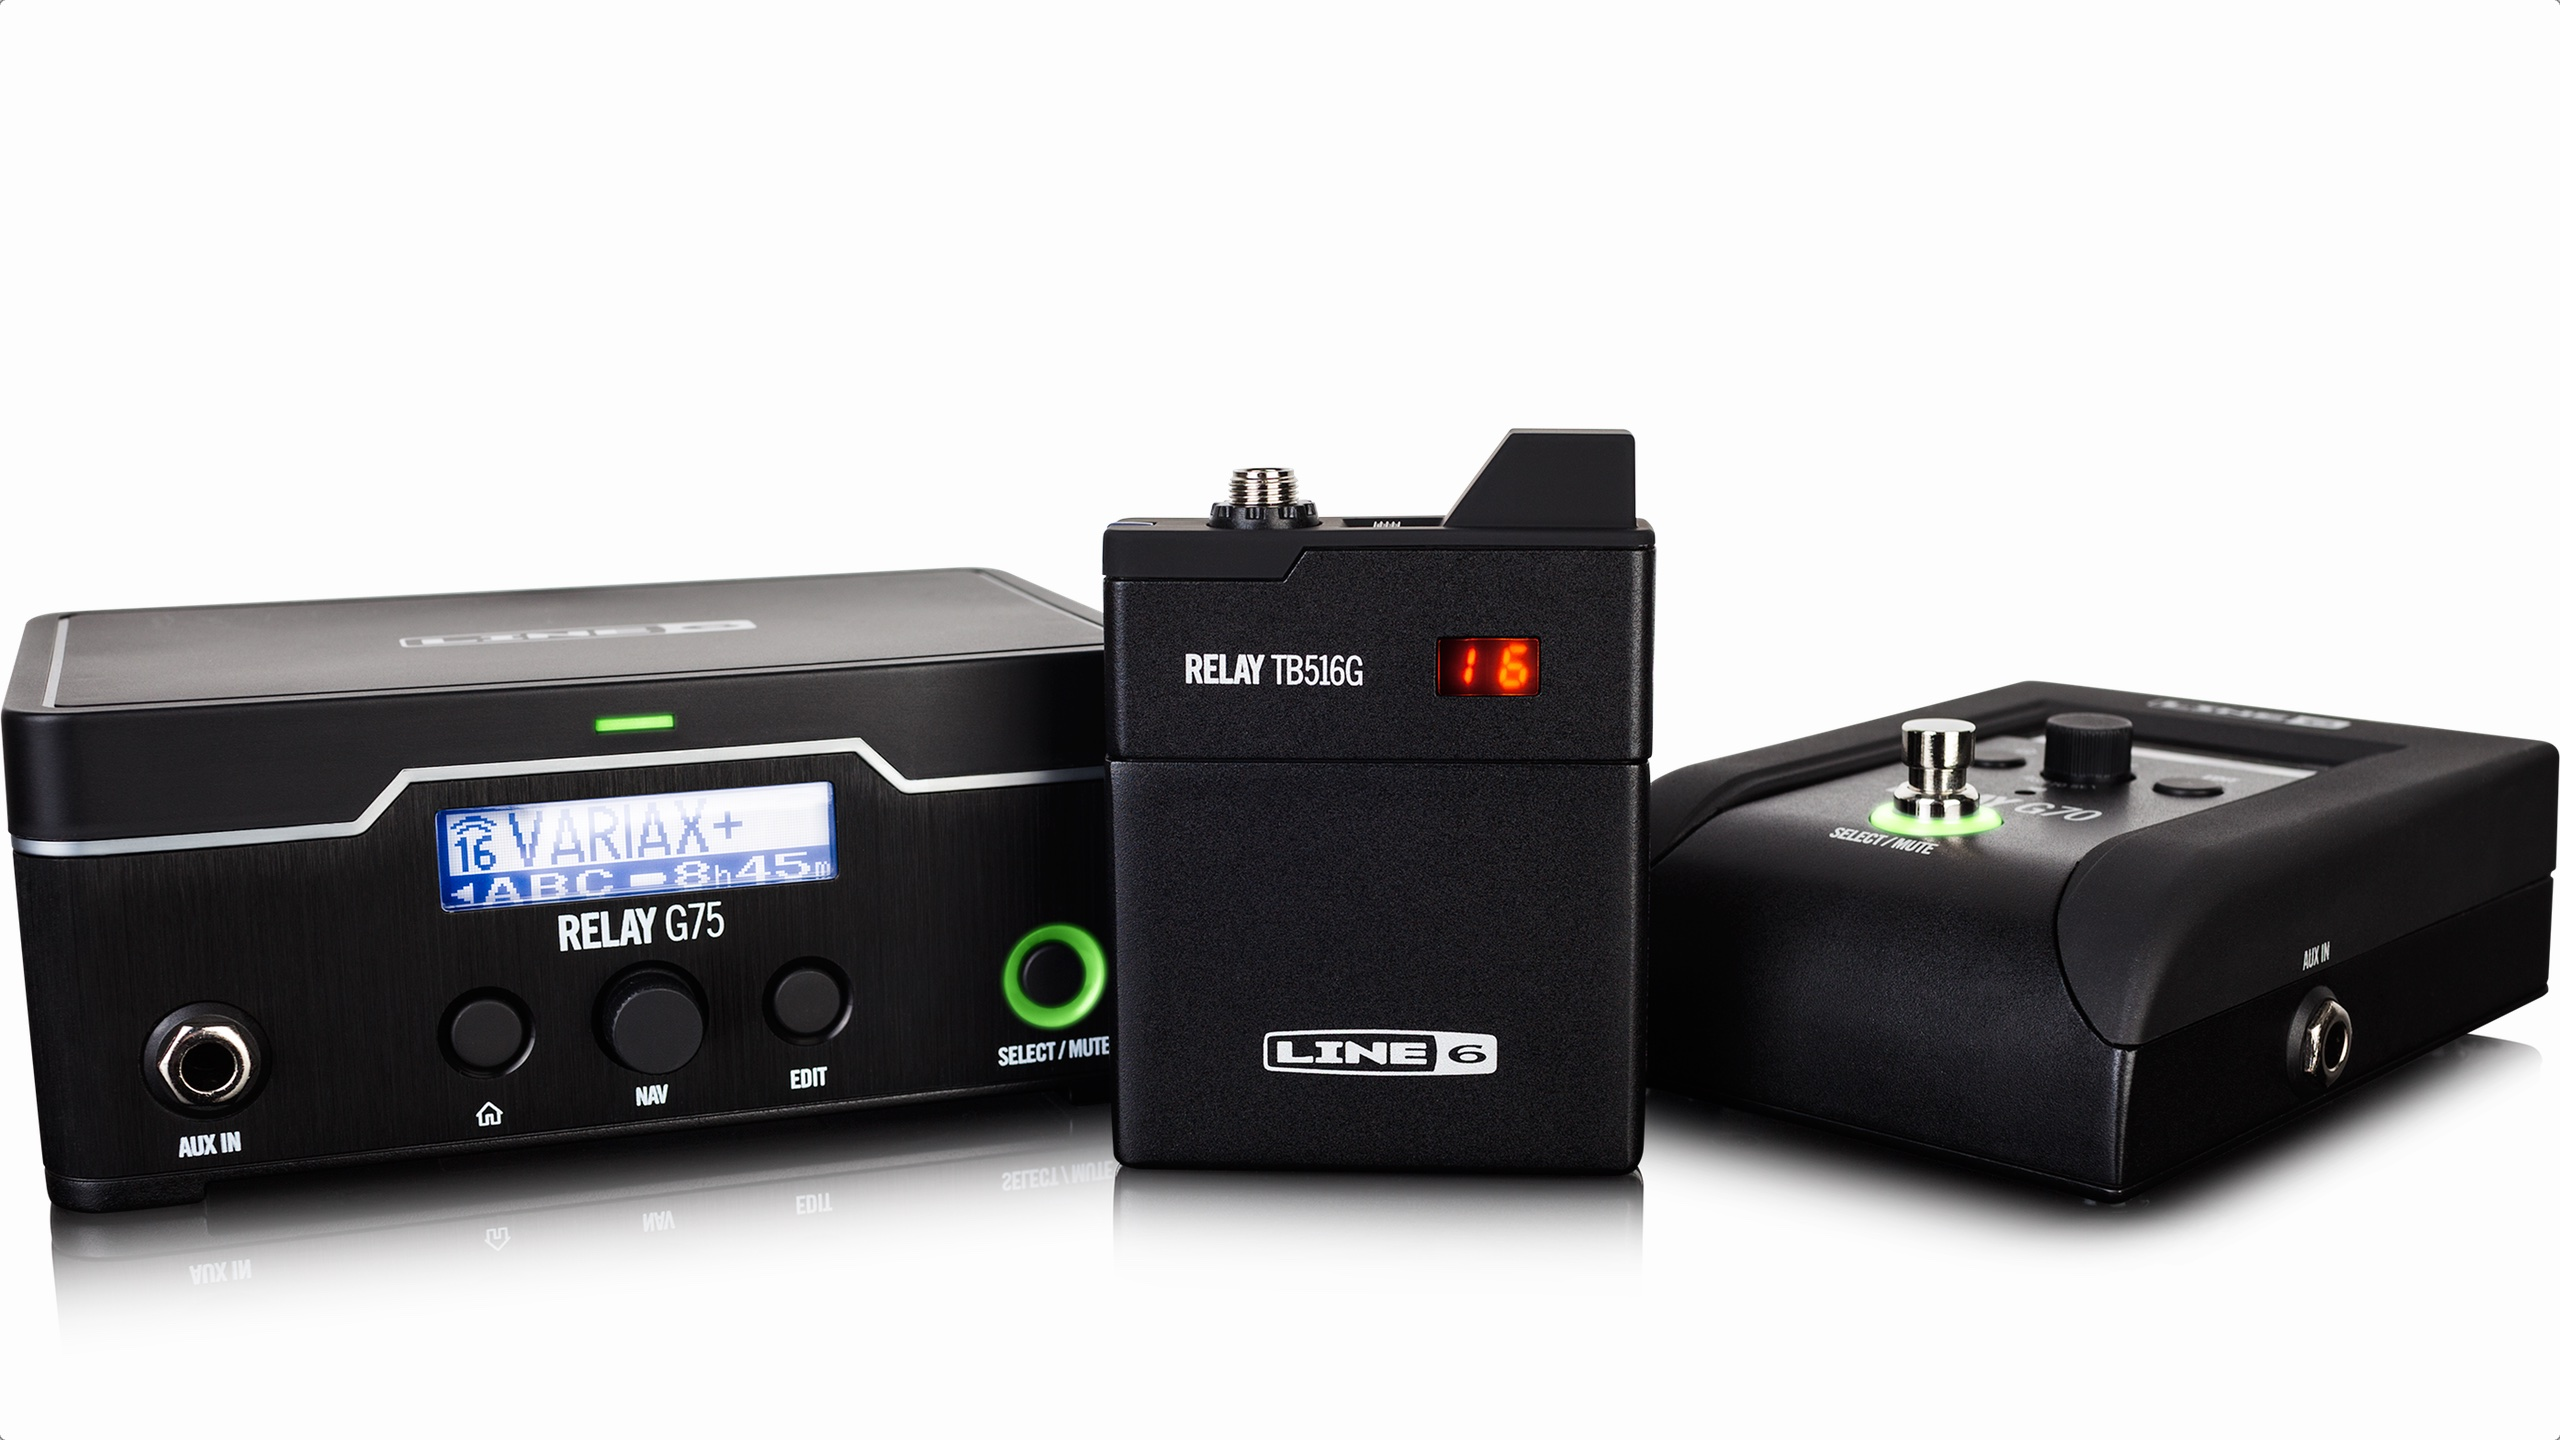 Line-6-relay-g70-g75-digital-wireless